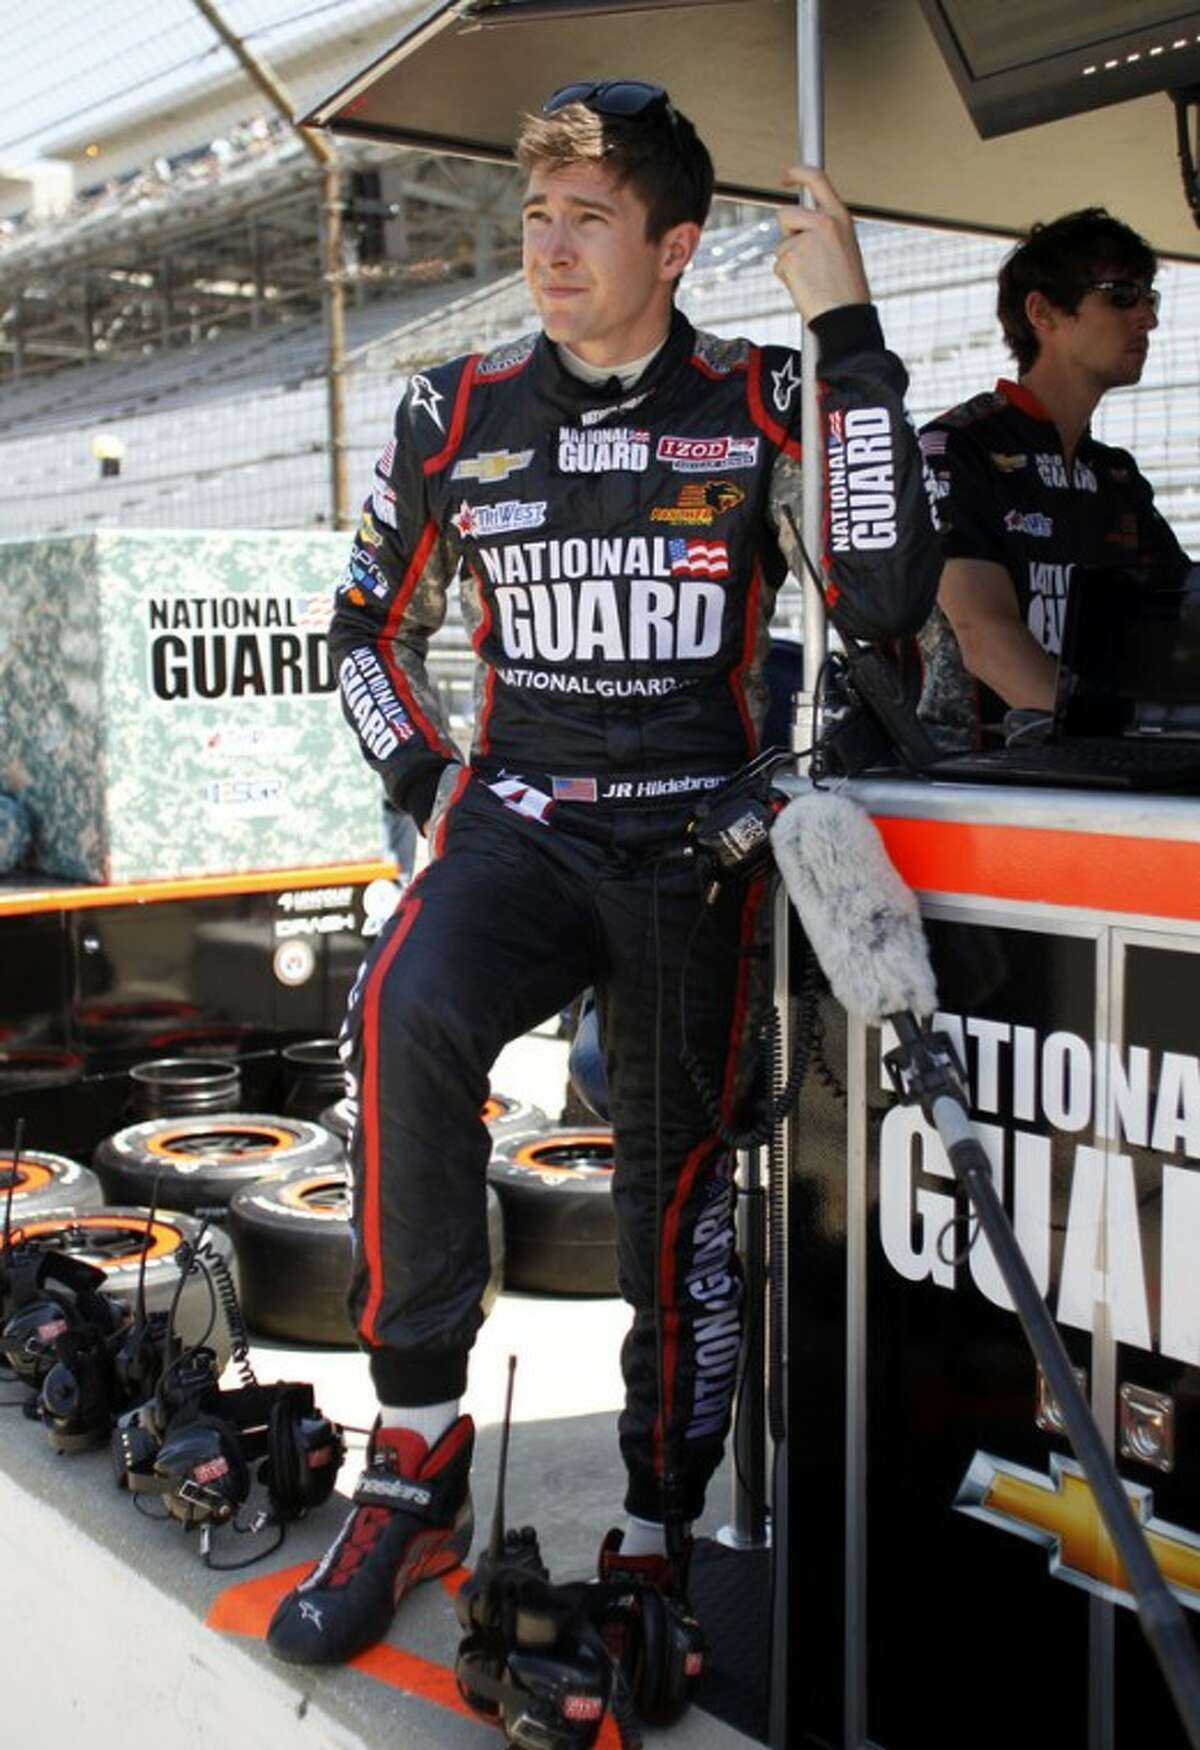 IndyCar driver JR Hildebrand waits for the start of practice for the Indianapolis 500 auto race at the Indianapolis Motor Speedway in Indianapolis, Friday, May 18, 2012. (AP Photo/Tom Strattman)